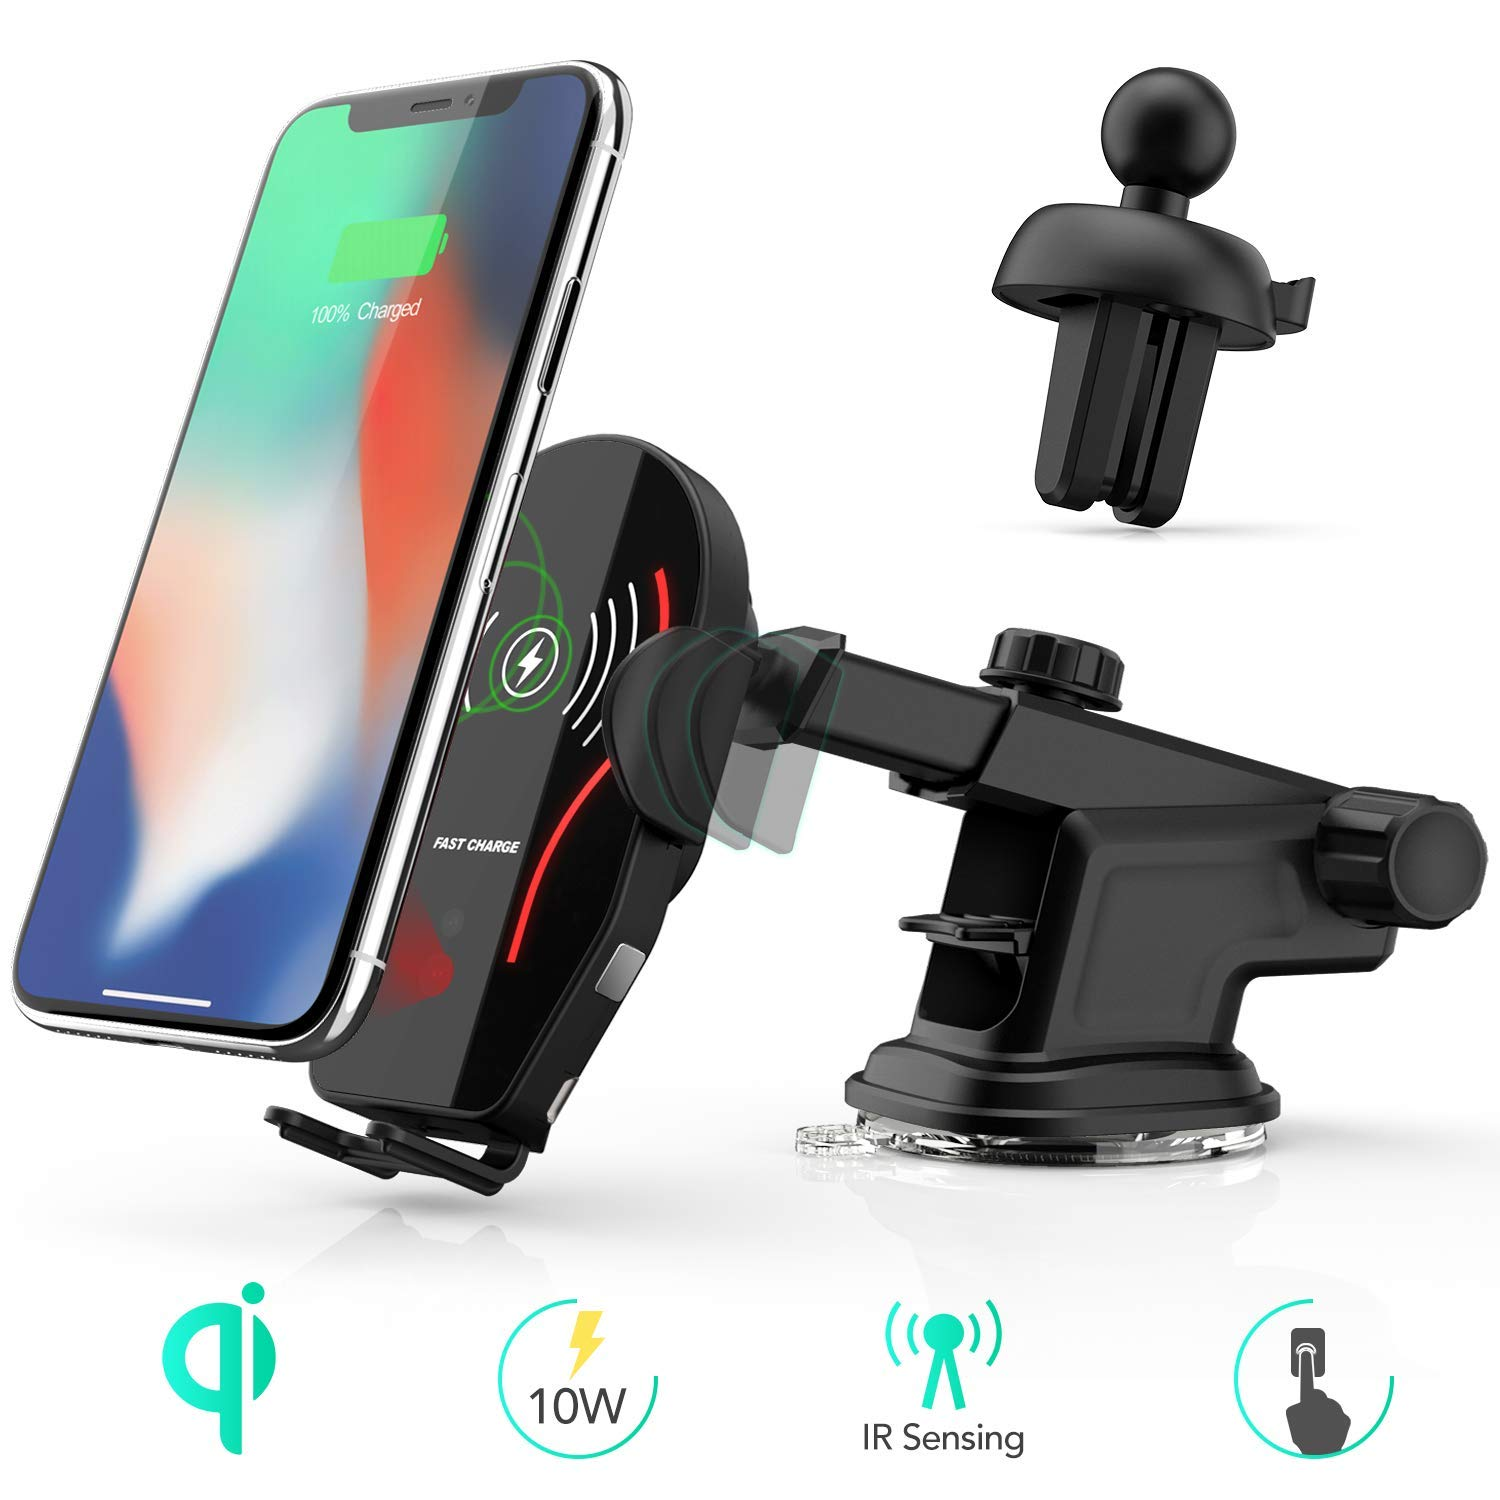 Wireless Car Charger Auto Clamping, AGPTEK Qi Fast Charging Car Mount 10W, 7.5w for Windshield Dashboard Air Vent Infrared Sensor Compatible with iPhone Xs Max XR XS X 8 Plus Samsung Galaxy S9 S8 S7 by AGPTEK